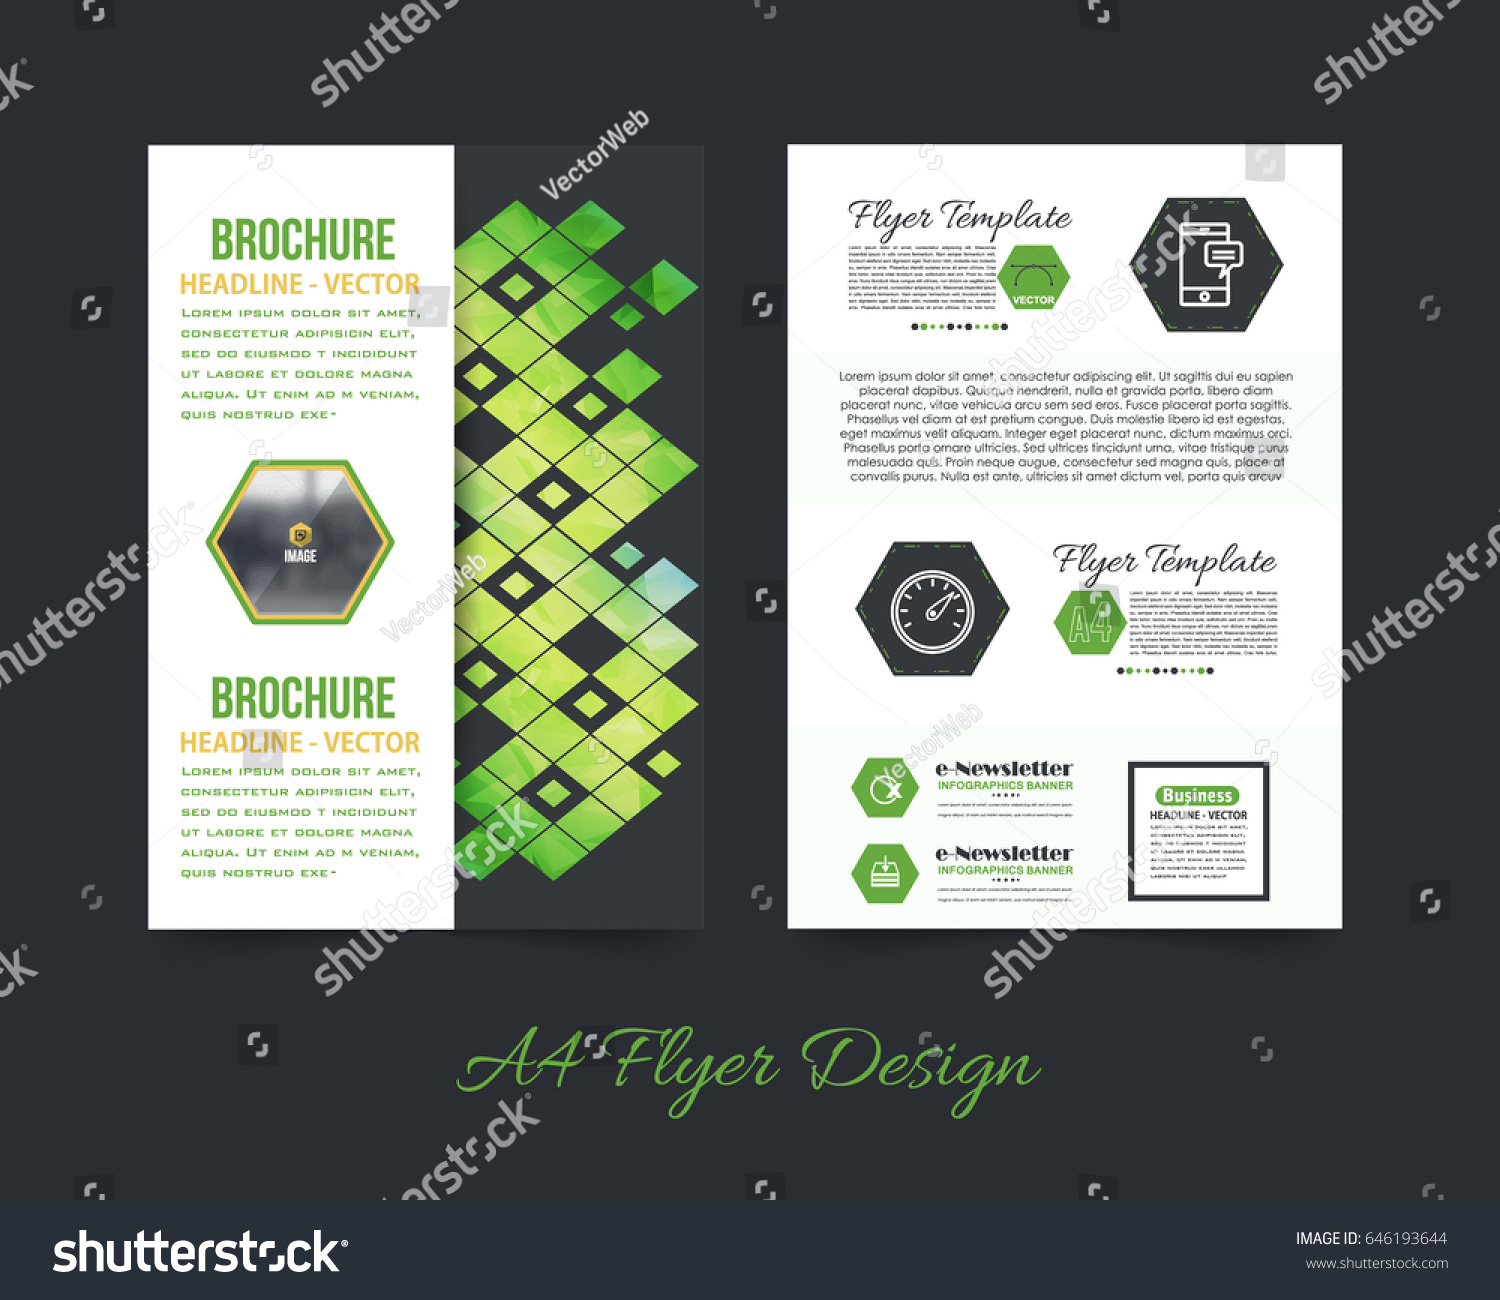 Business pamphlet low poly booklet template stock vector 2018 business pamphlet or low poly booklet template a4 document and vector background flyer polygonal flashek Gallery